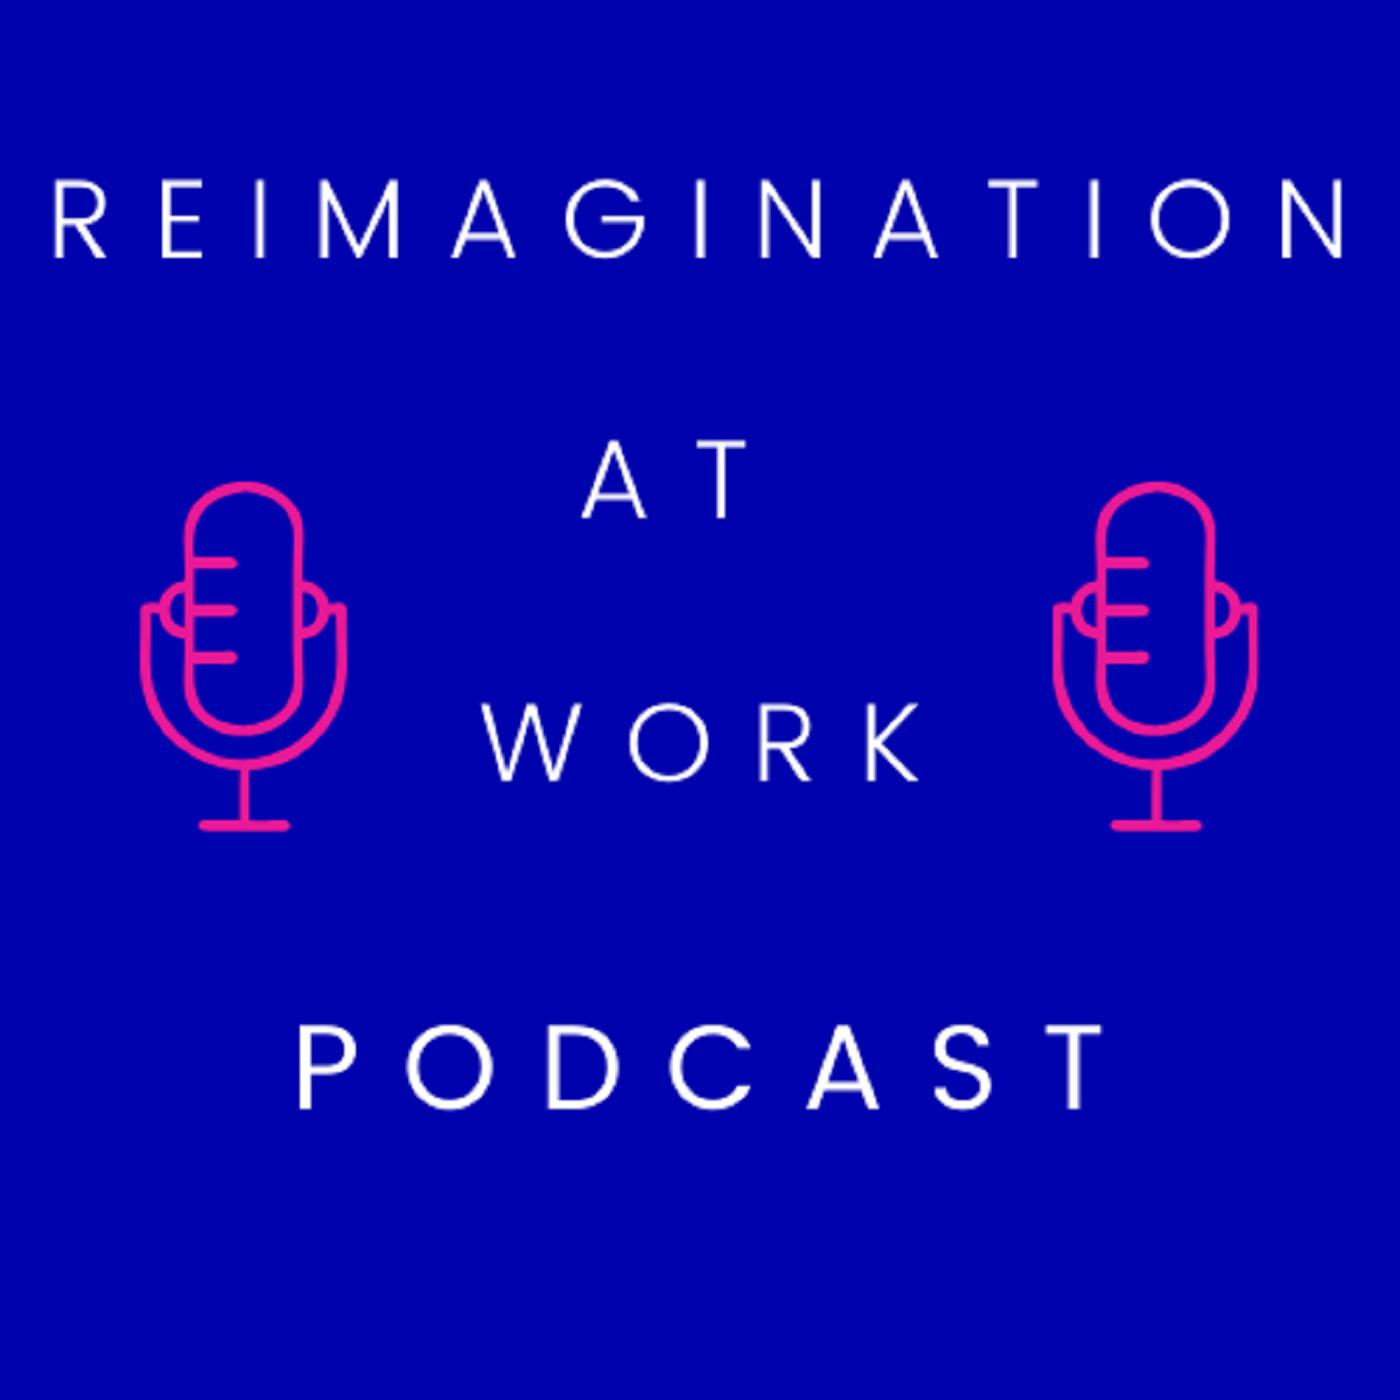 Episode 4: White Men Can't Lead | Reimagination At Work